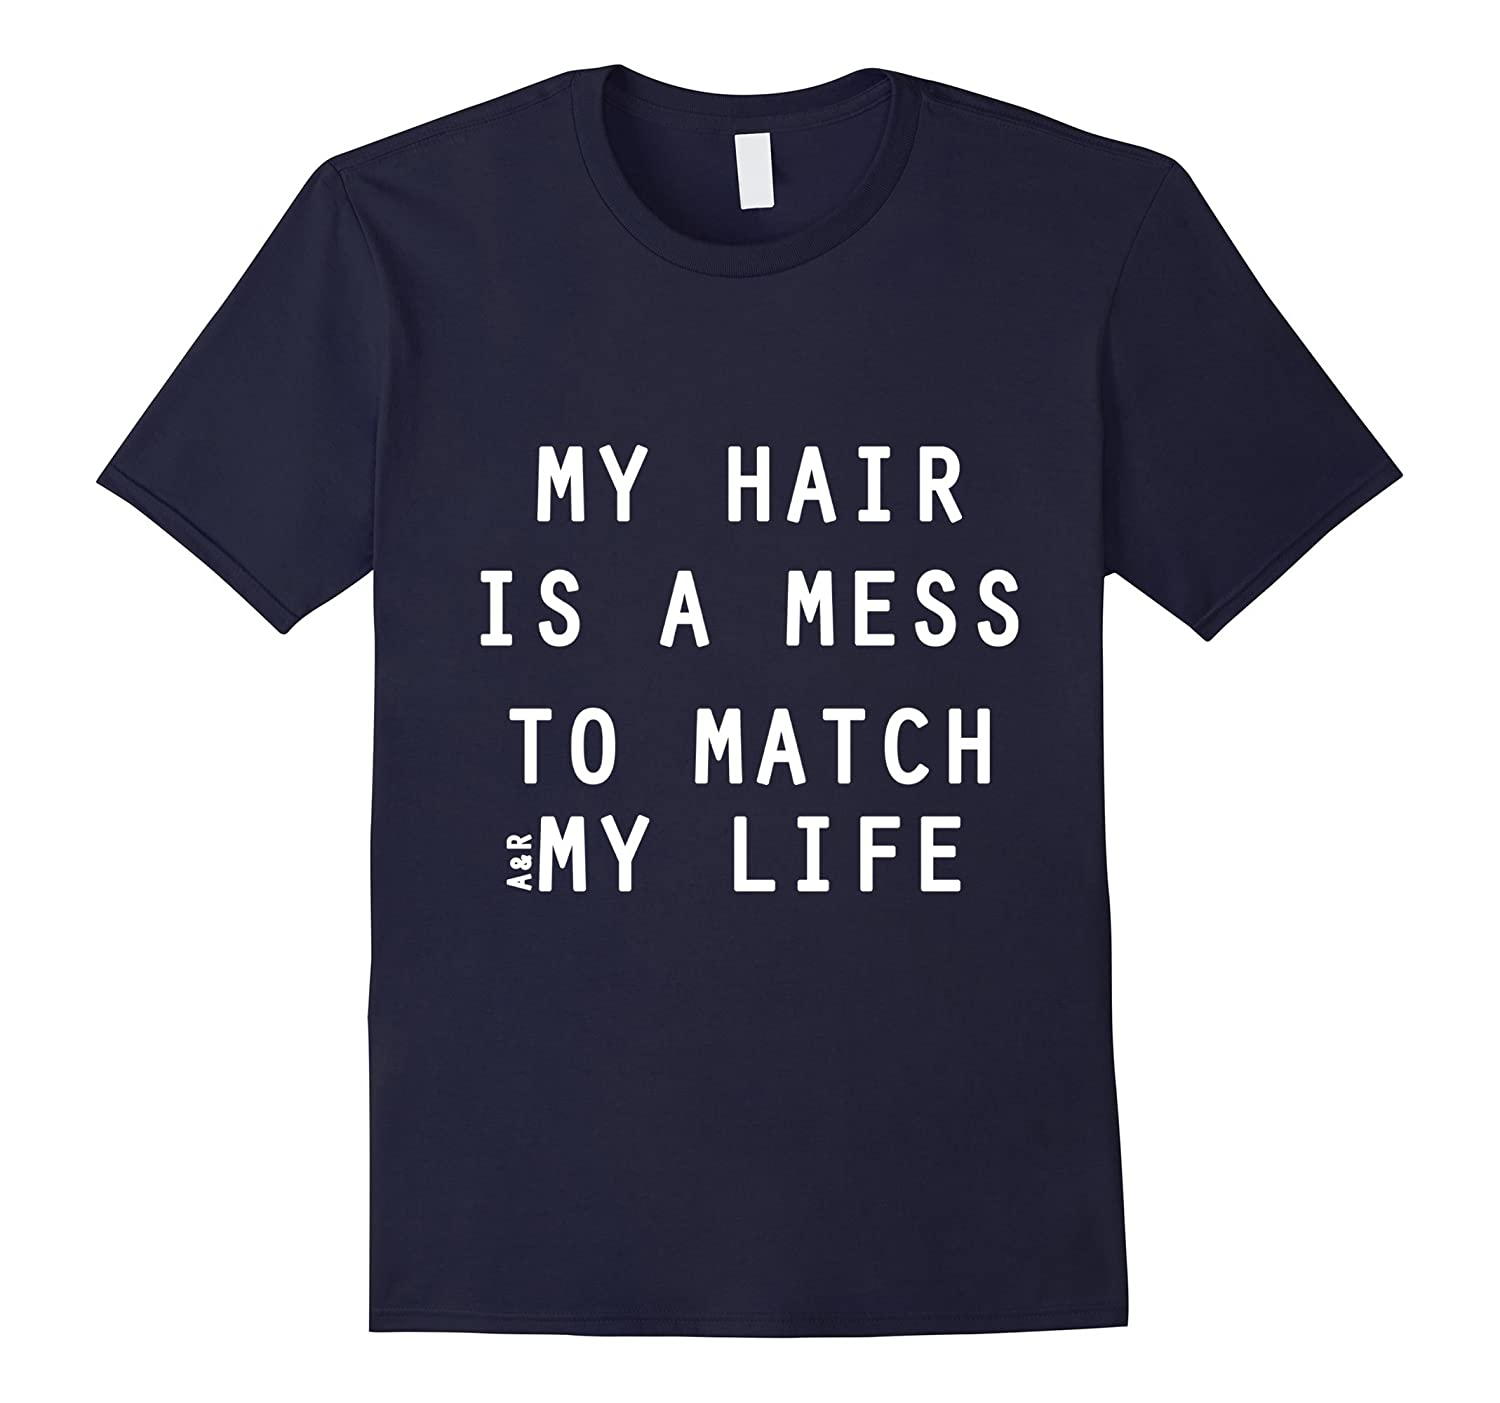 My Hair is a mess to match my life - tee shirt-TD